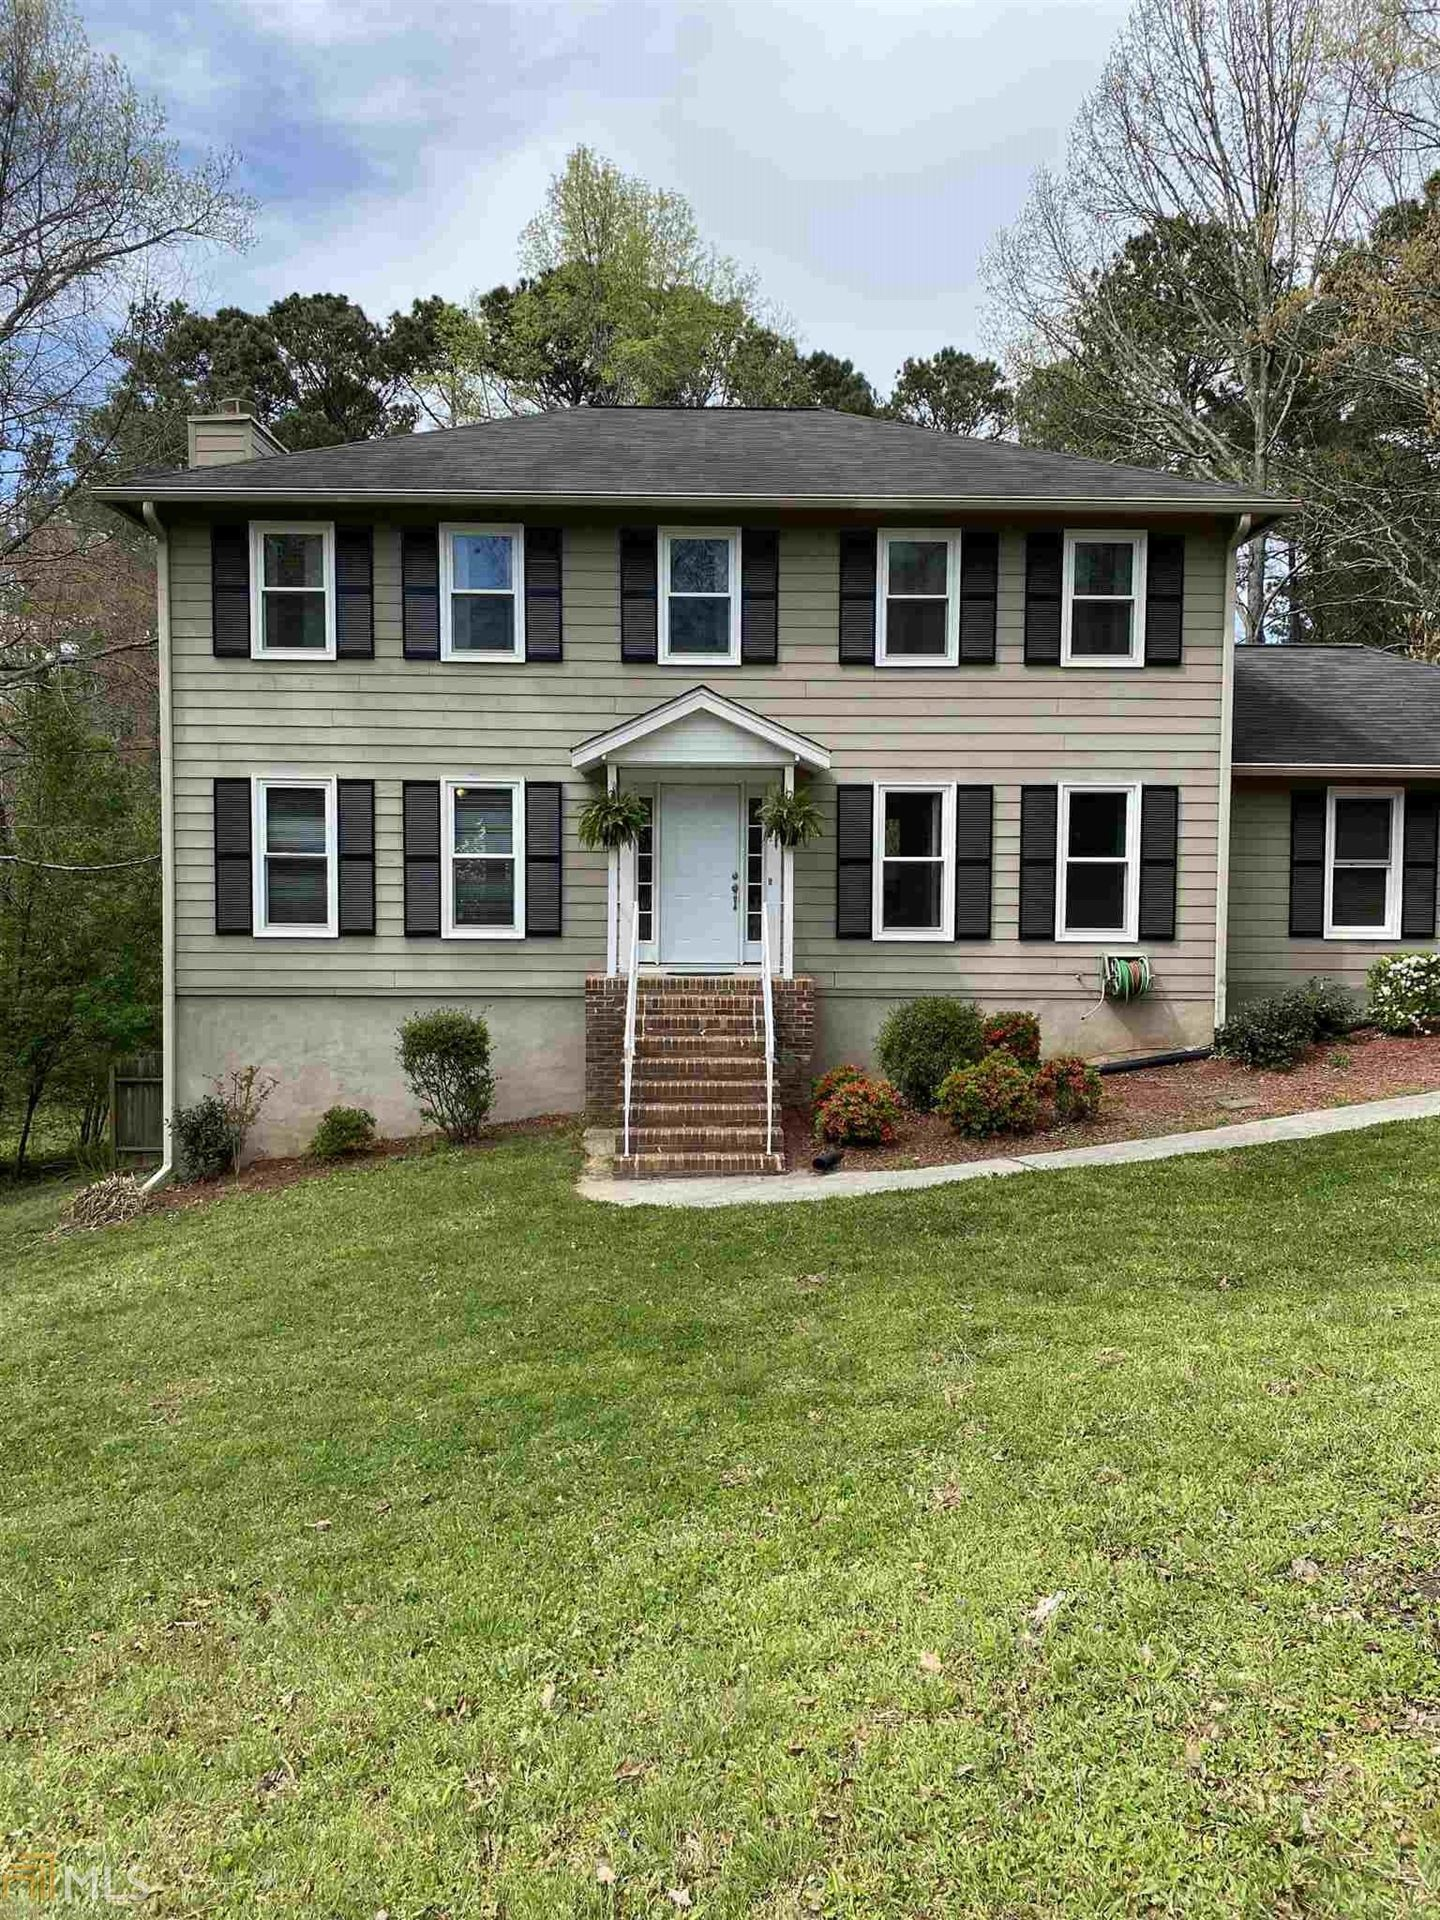 130 Tanglewood Dr, Fayetteville, GA 30214 - #: 8975727